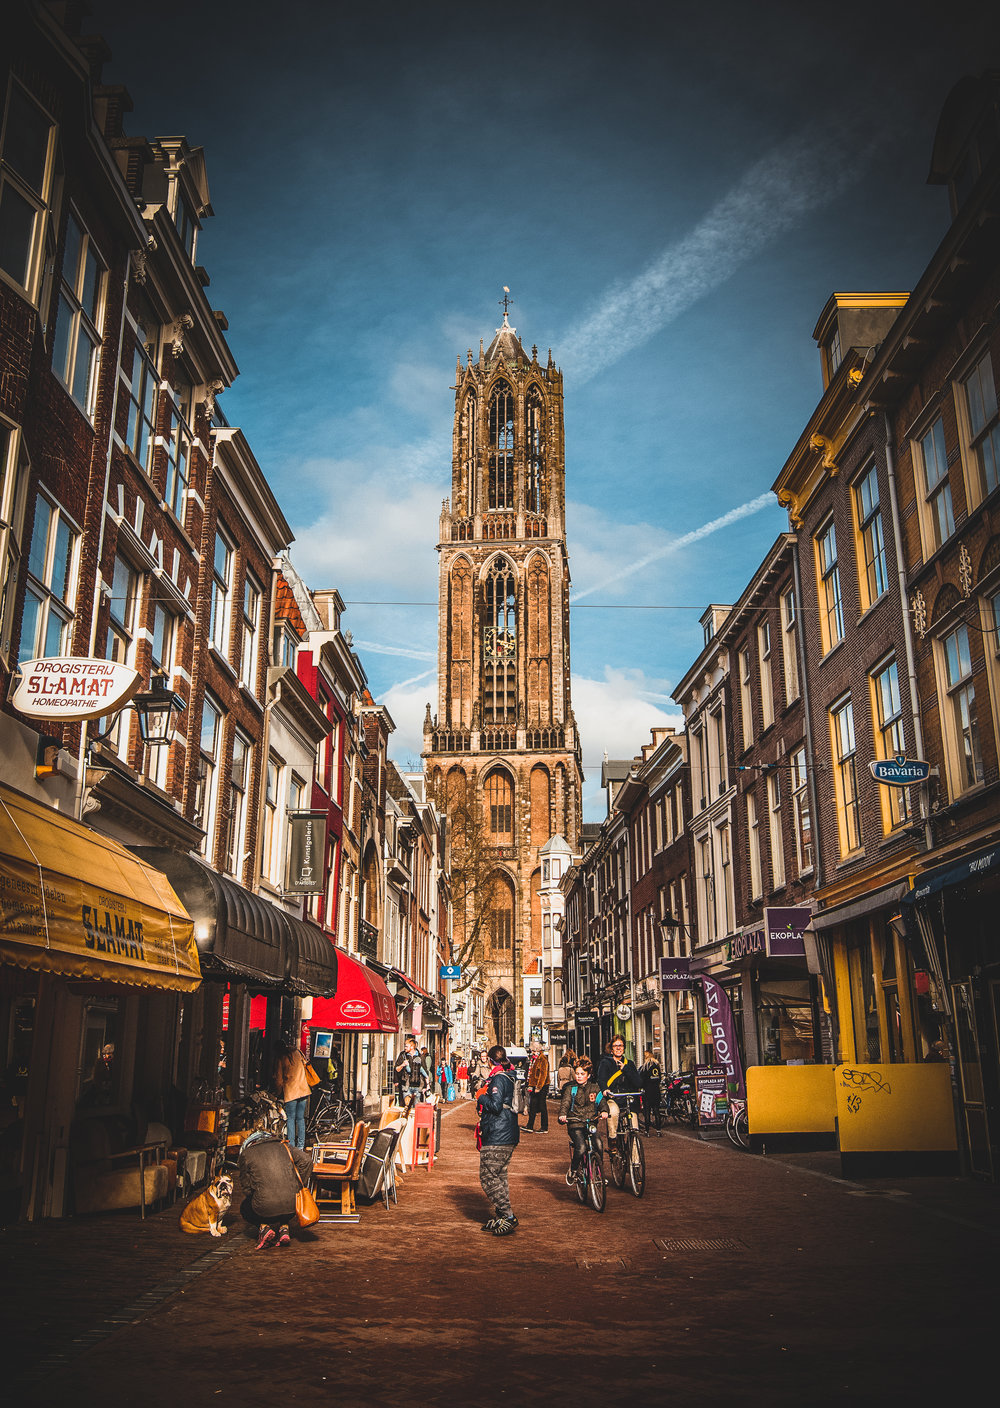 Utrecht is quite a place even if we got there too late for a trip up the tower.